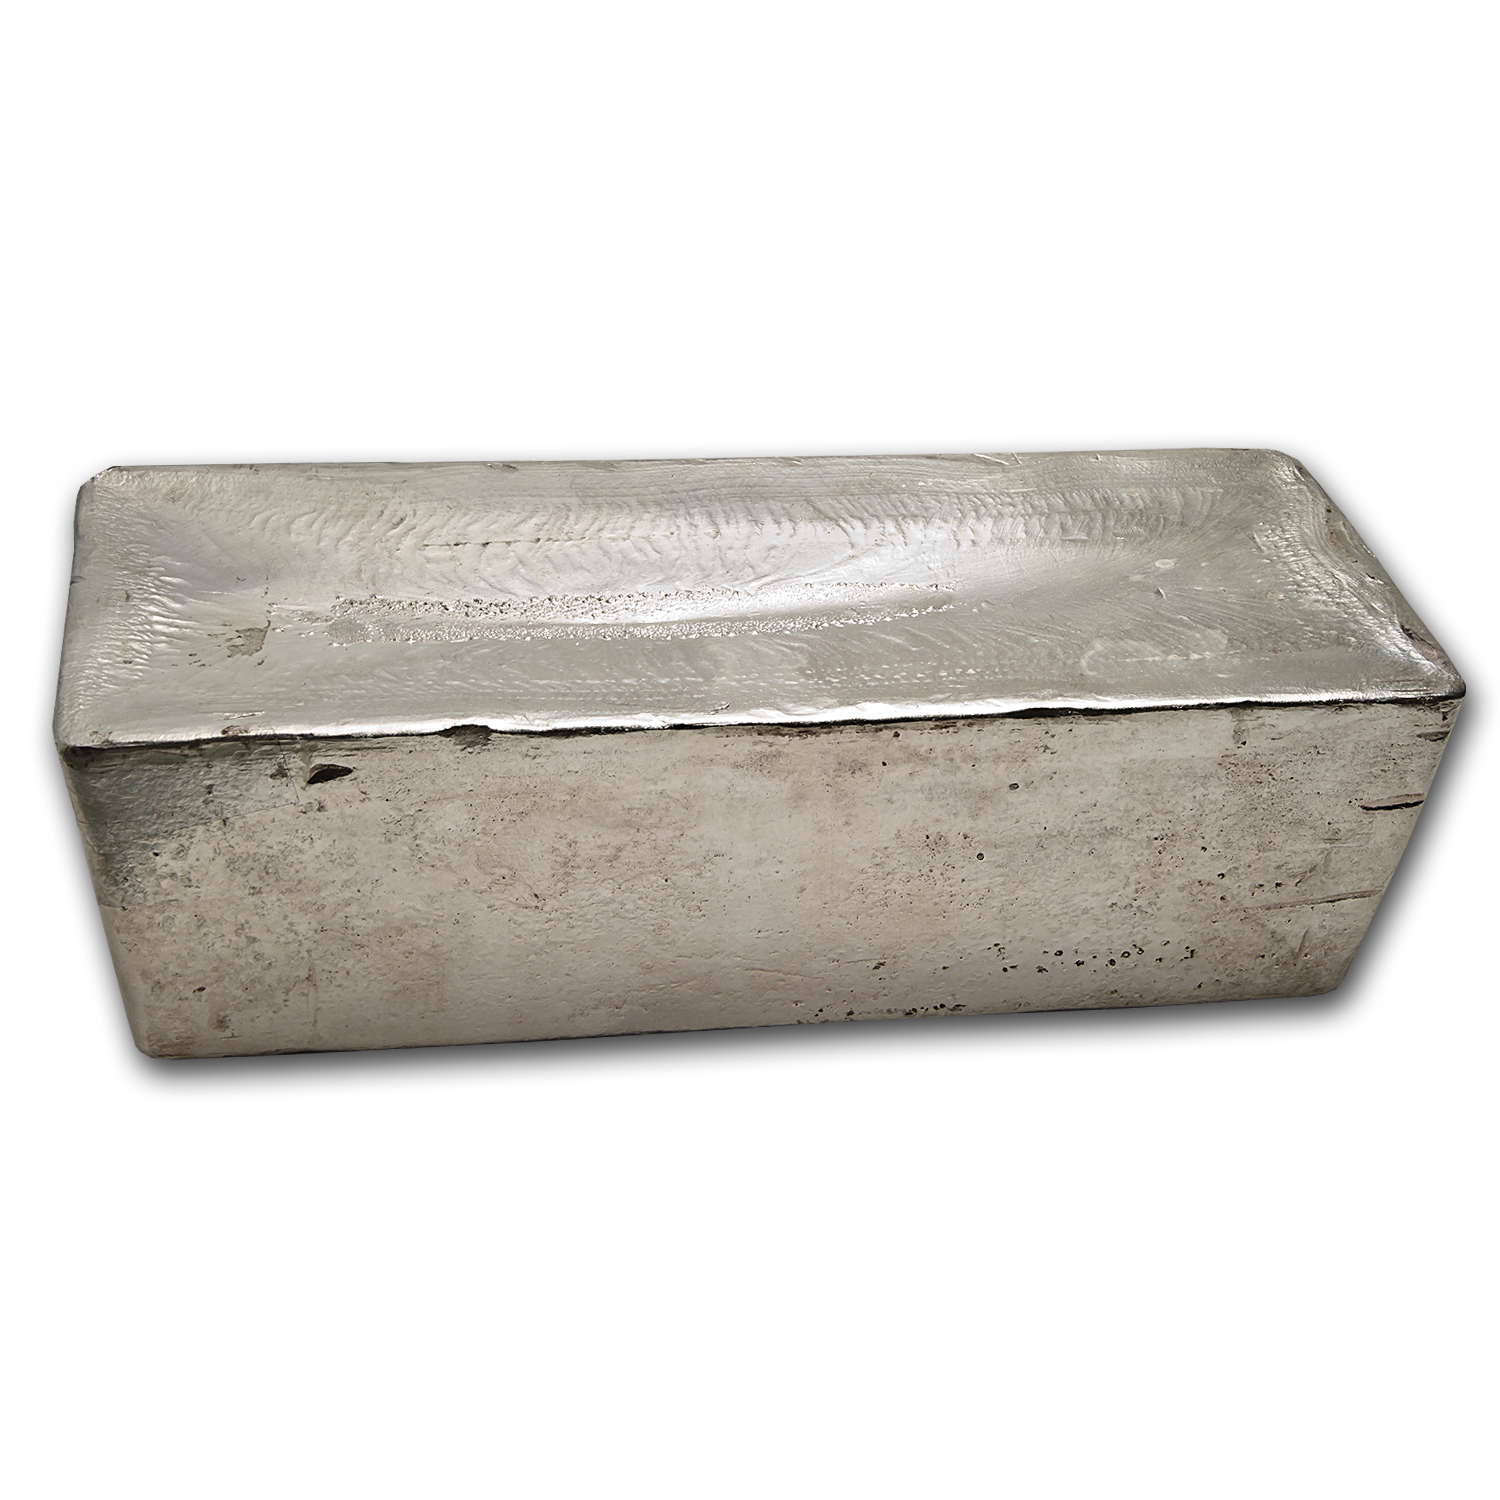 1083.09 oz Silver Bar - Peñoles